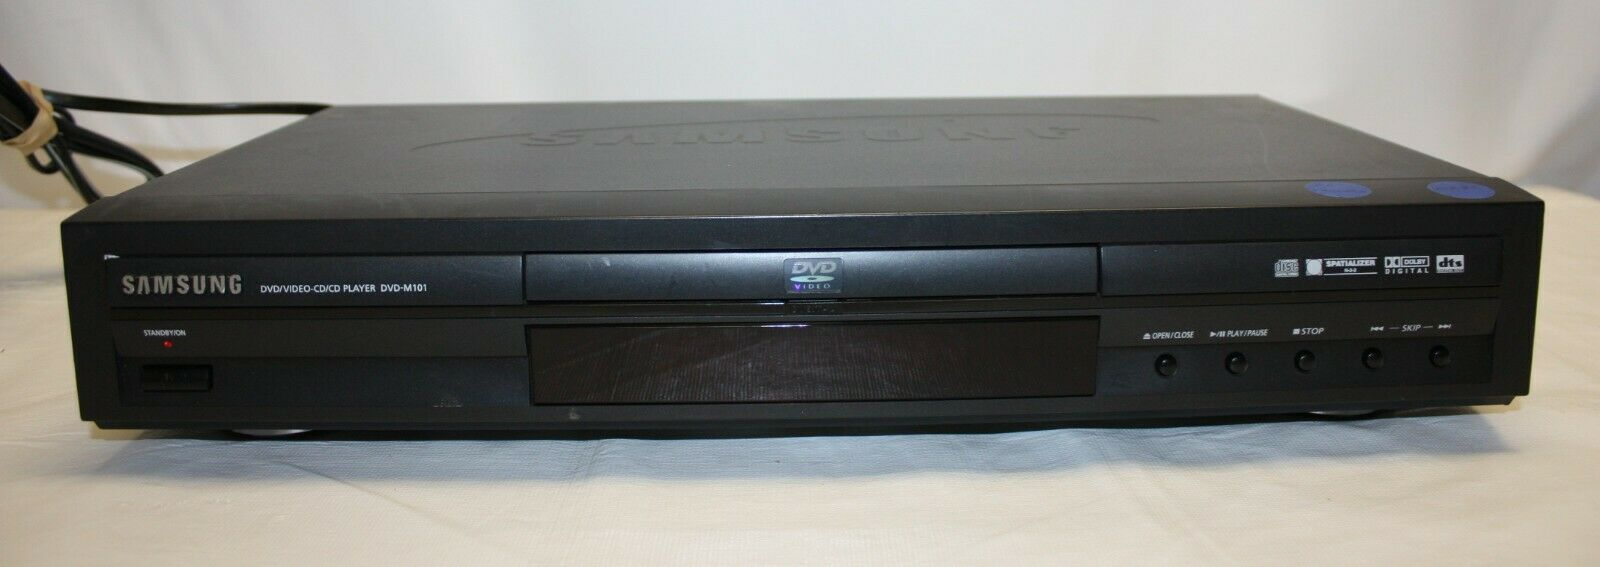 Primary image for Samsung DVD/Video CD/CD-M101 DVD Player  TESTED